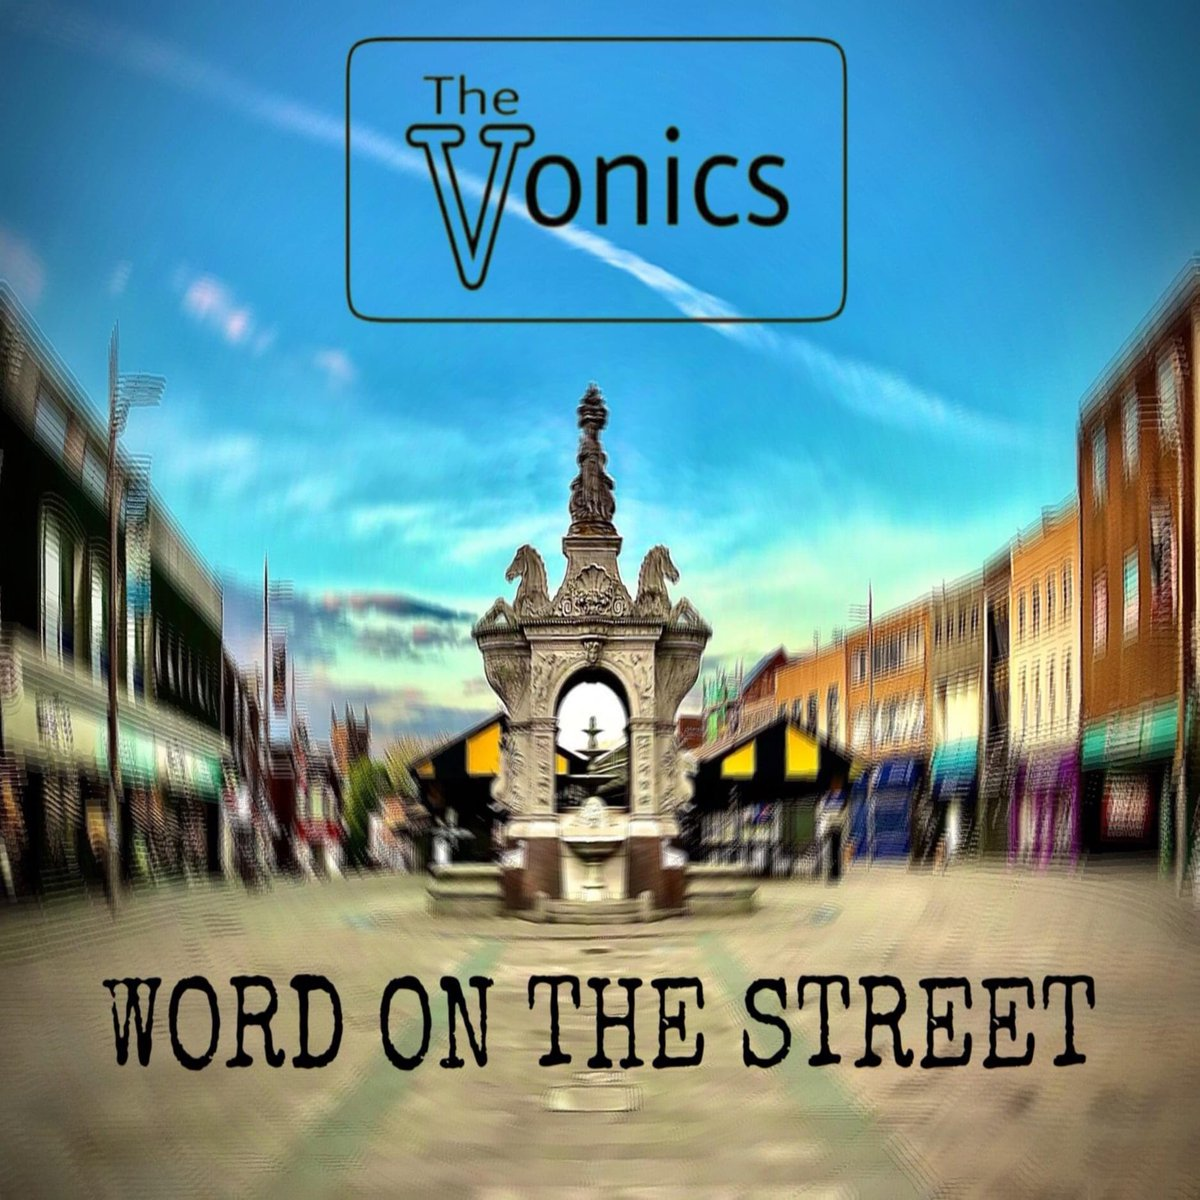 OUT NOW  Our six track EP 'Word On The Steet' is now available to download and stream from all the major online platforms!!  #NewMusicAlert #NewMusic #ep #alternativerock #indie #itunes #spotify #amazon #googlepic.twitter.com/l04DED0sYi